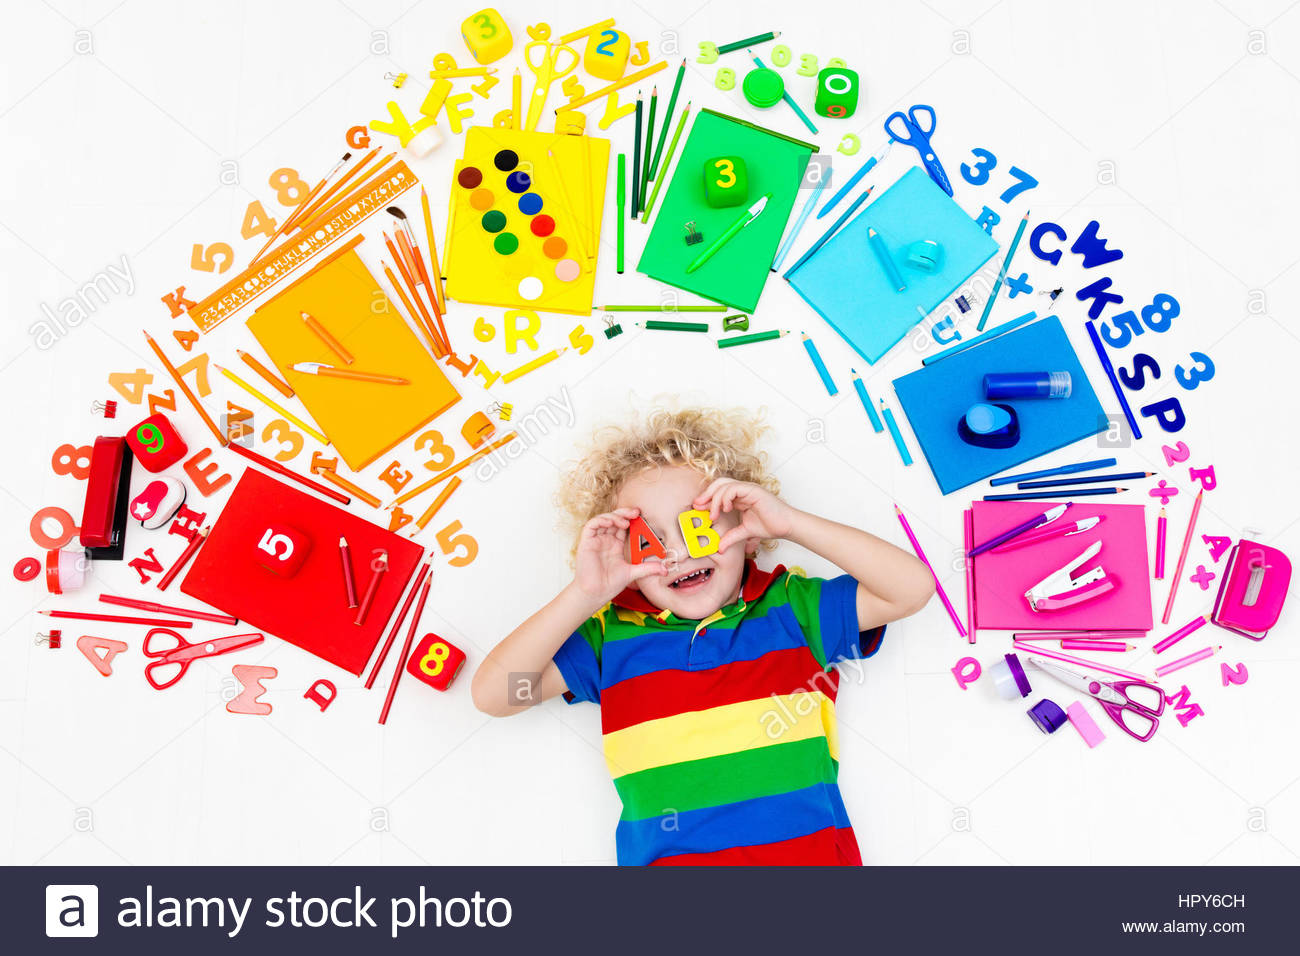 1300x956 Little Boy With School Supplies, Books, Drawing And Painting Tools